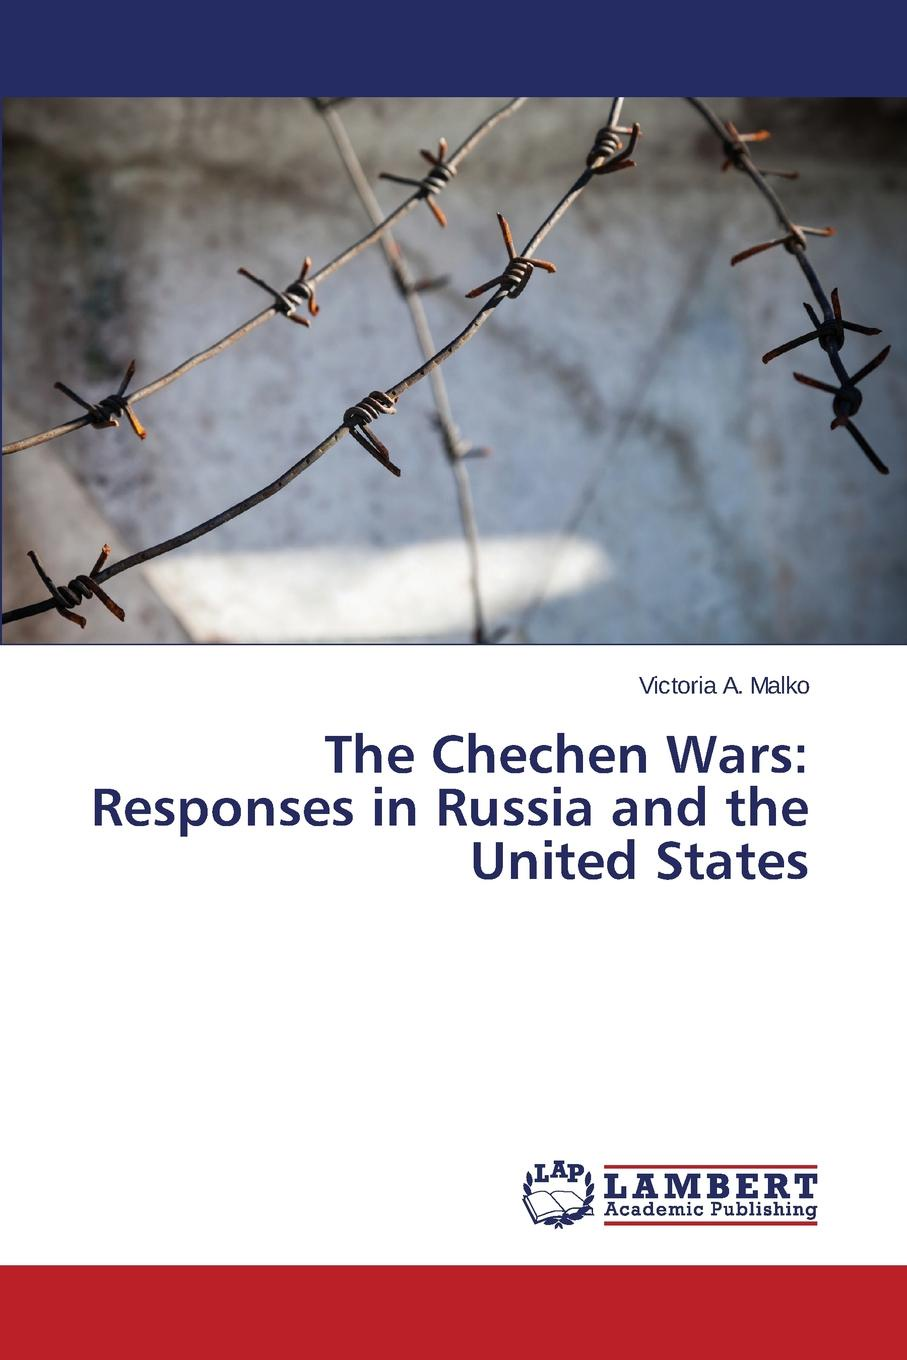 Malko Victoria A. The Chechen Wars. Responses in Russia and the United States f torkunov c noonan t shakleina russia and united states in the evoling world order